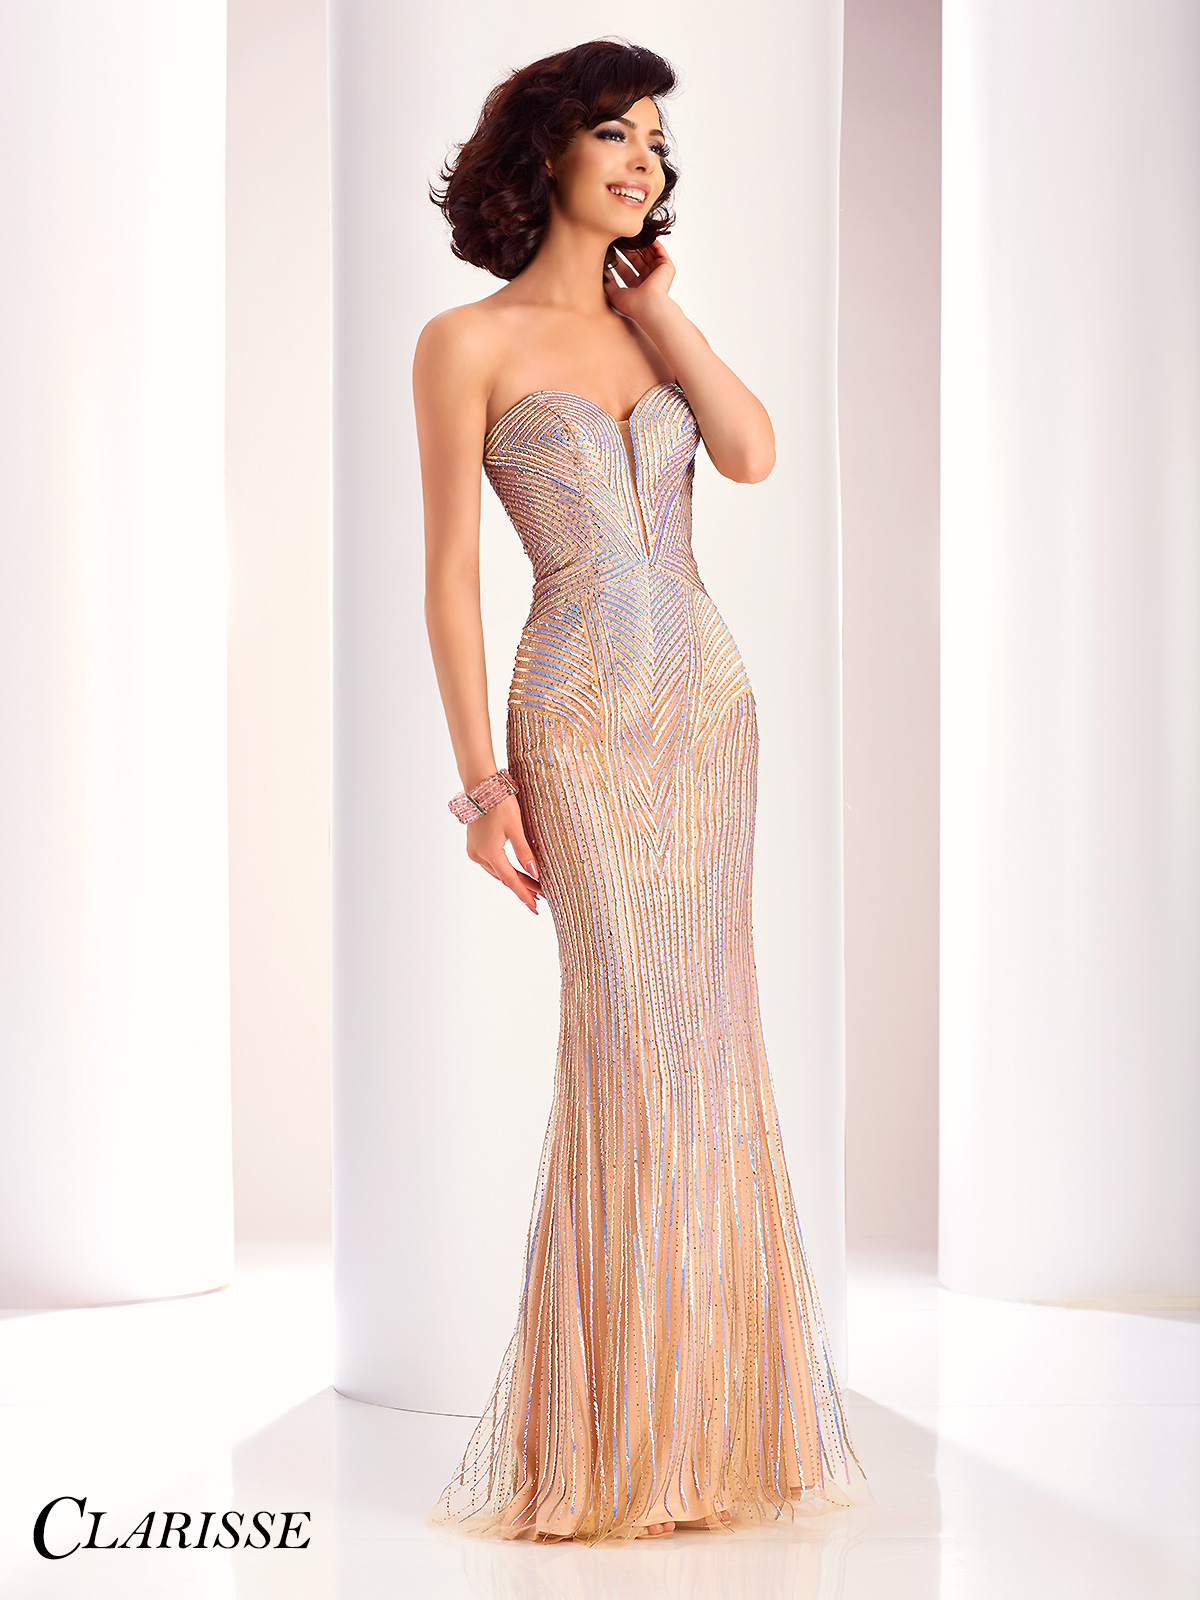 Champagne Dresses - Champagne Prom Gowns - Promgirl.net